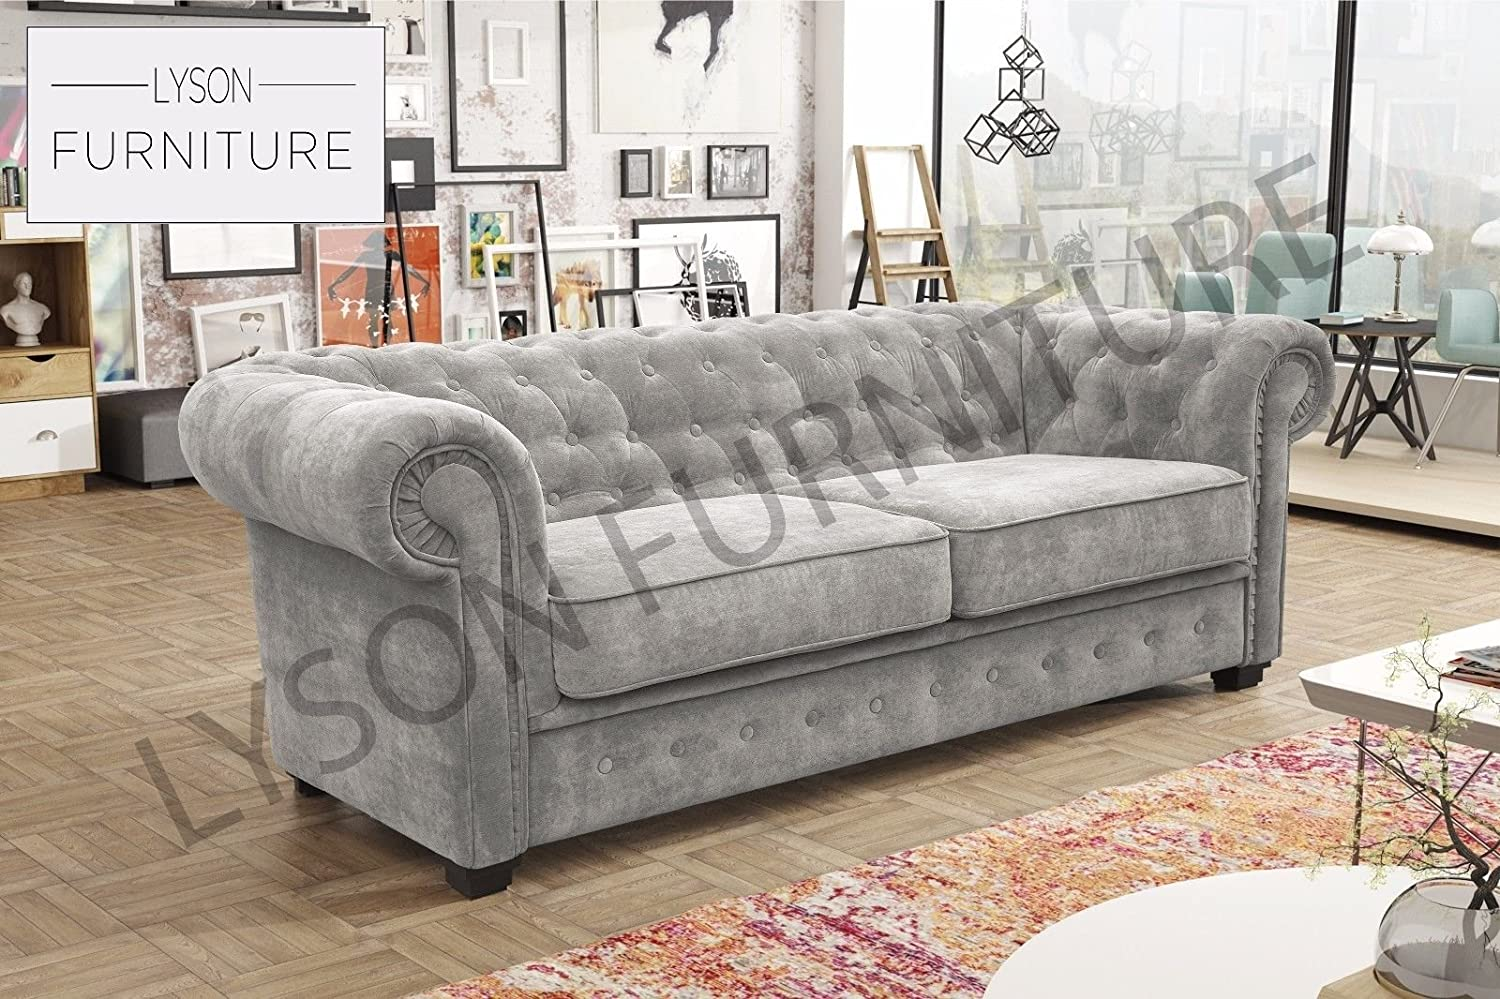 Lyson Furniture Imperial - Estilo Chesterfield - sofá - Tela ...